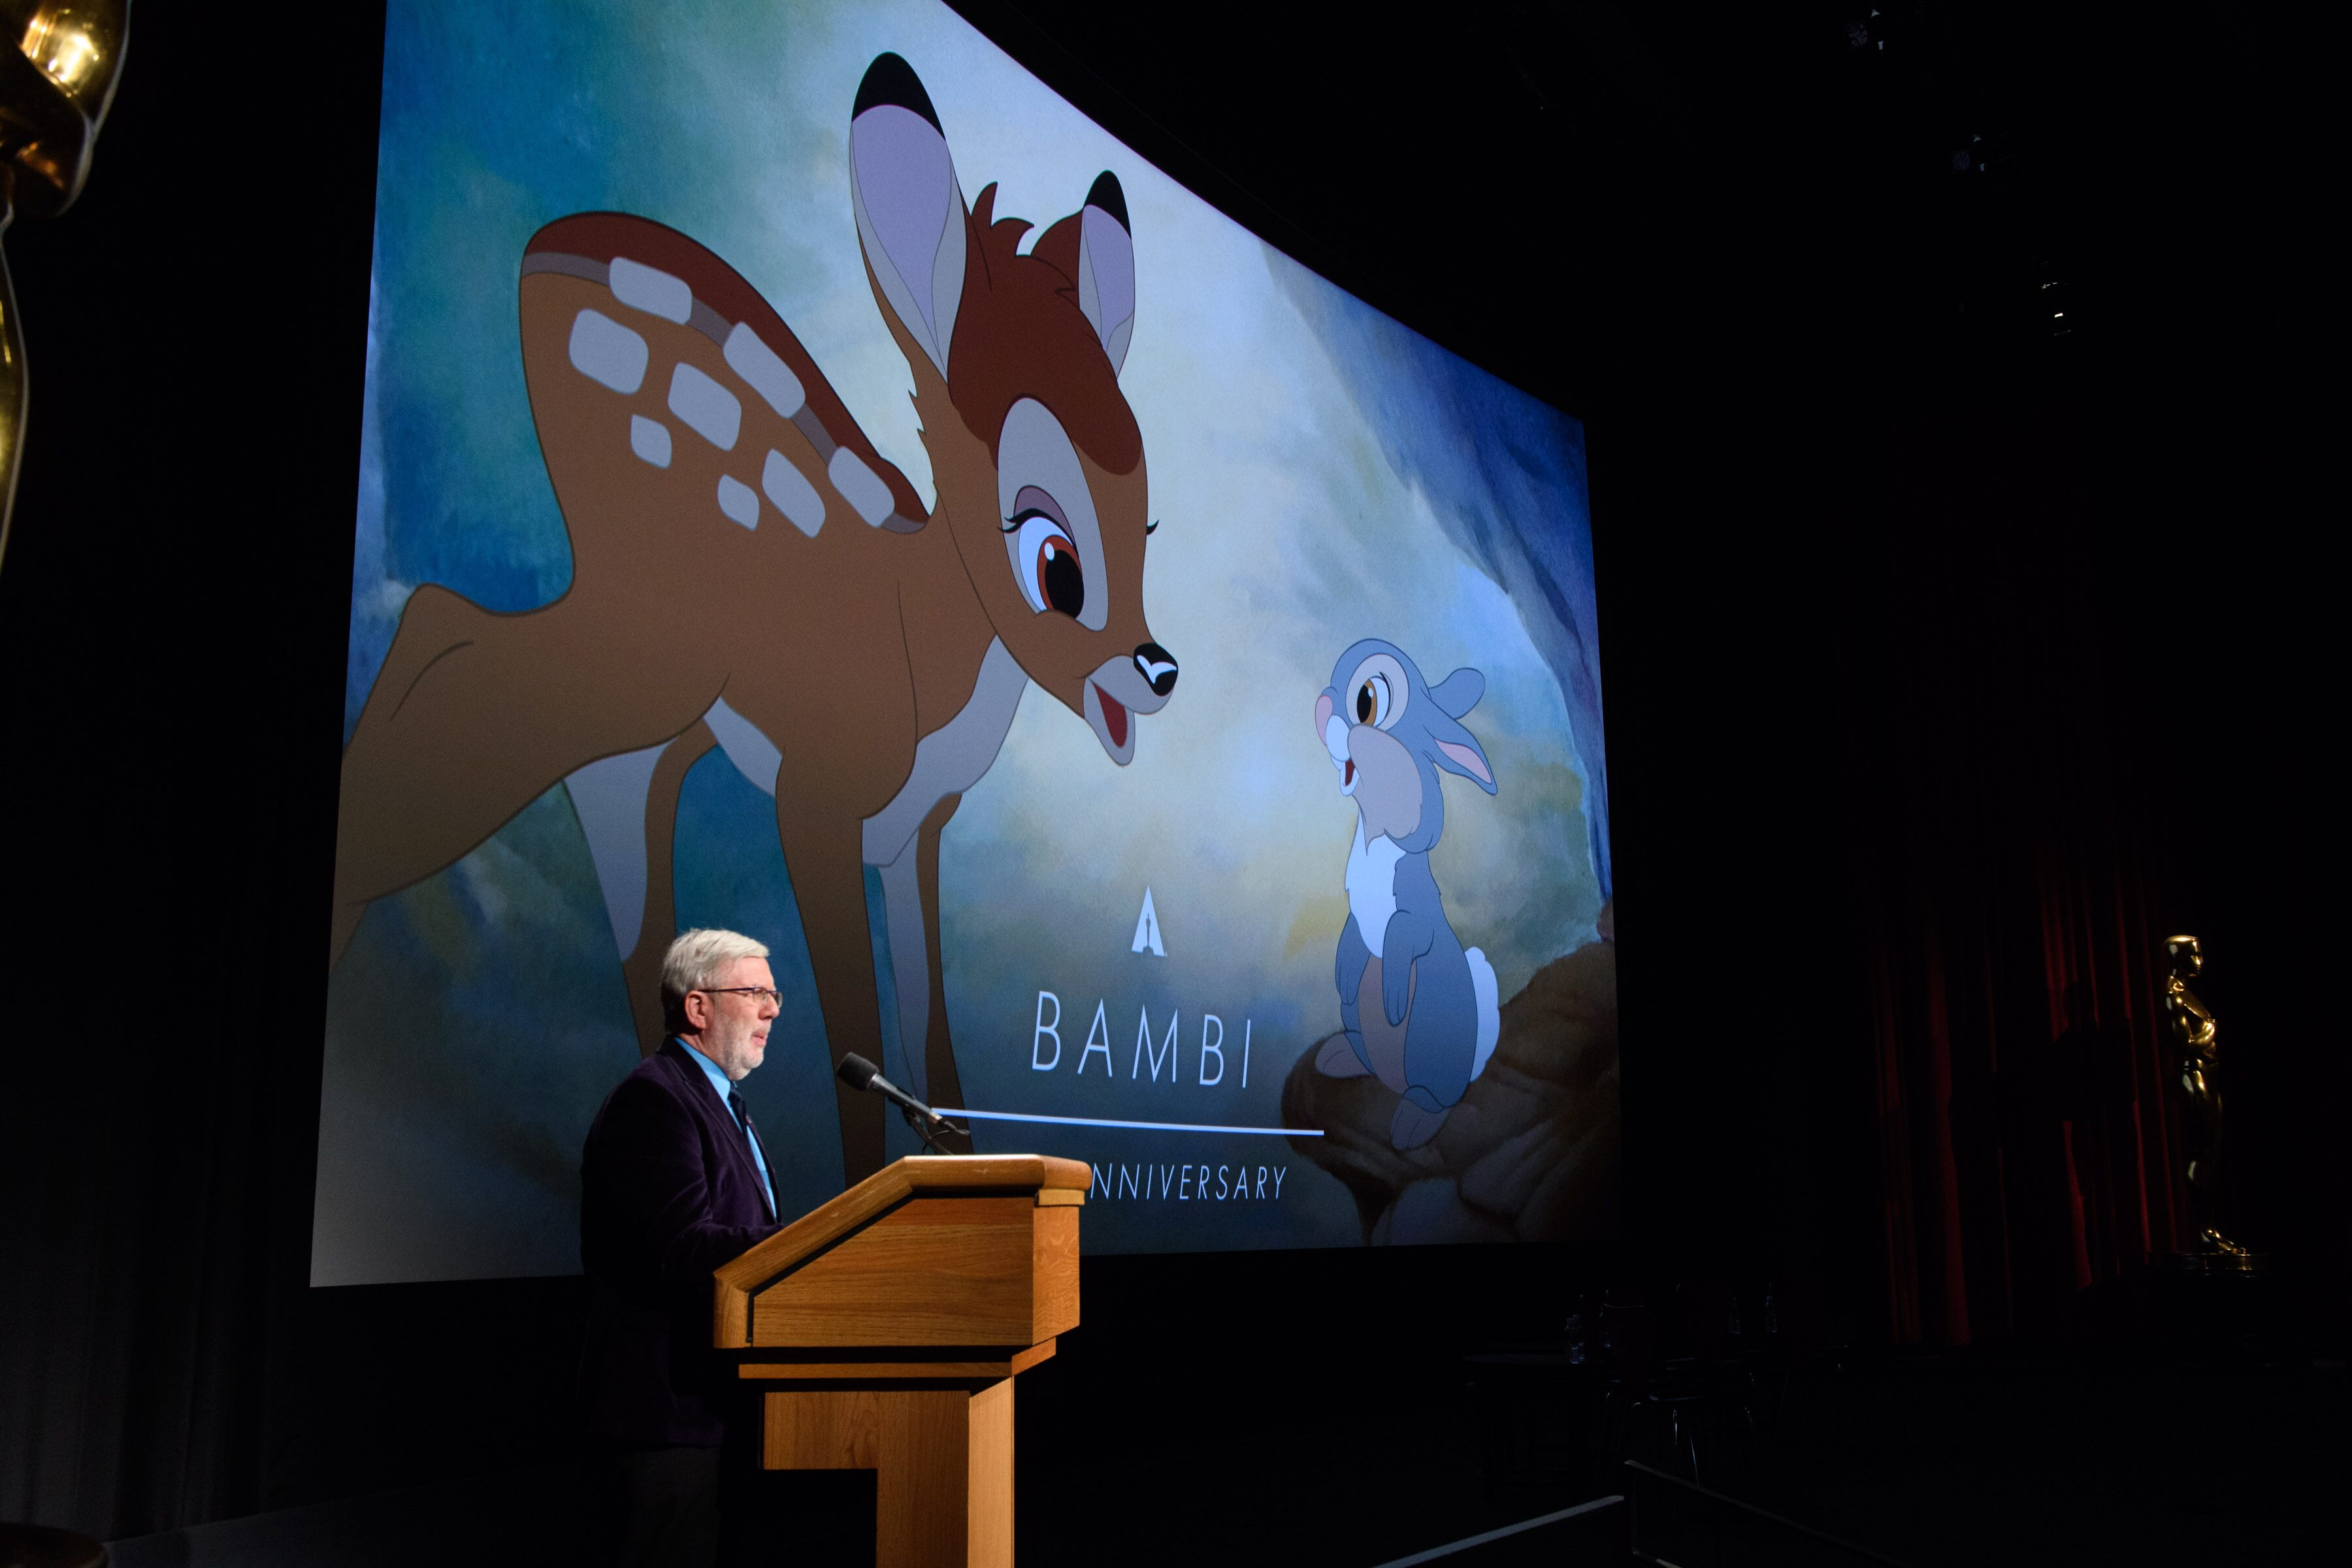 75th Anniversary of BAMBI (1942) | Oscars org | Academy of Motion